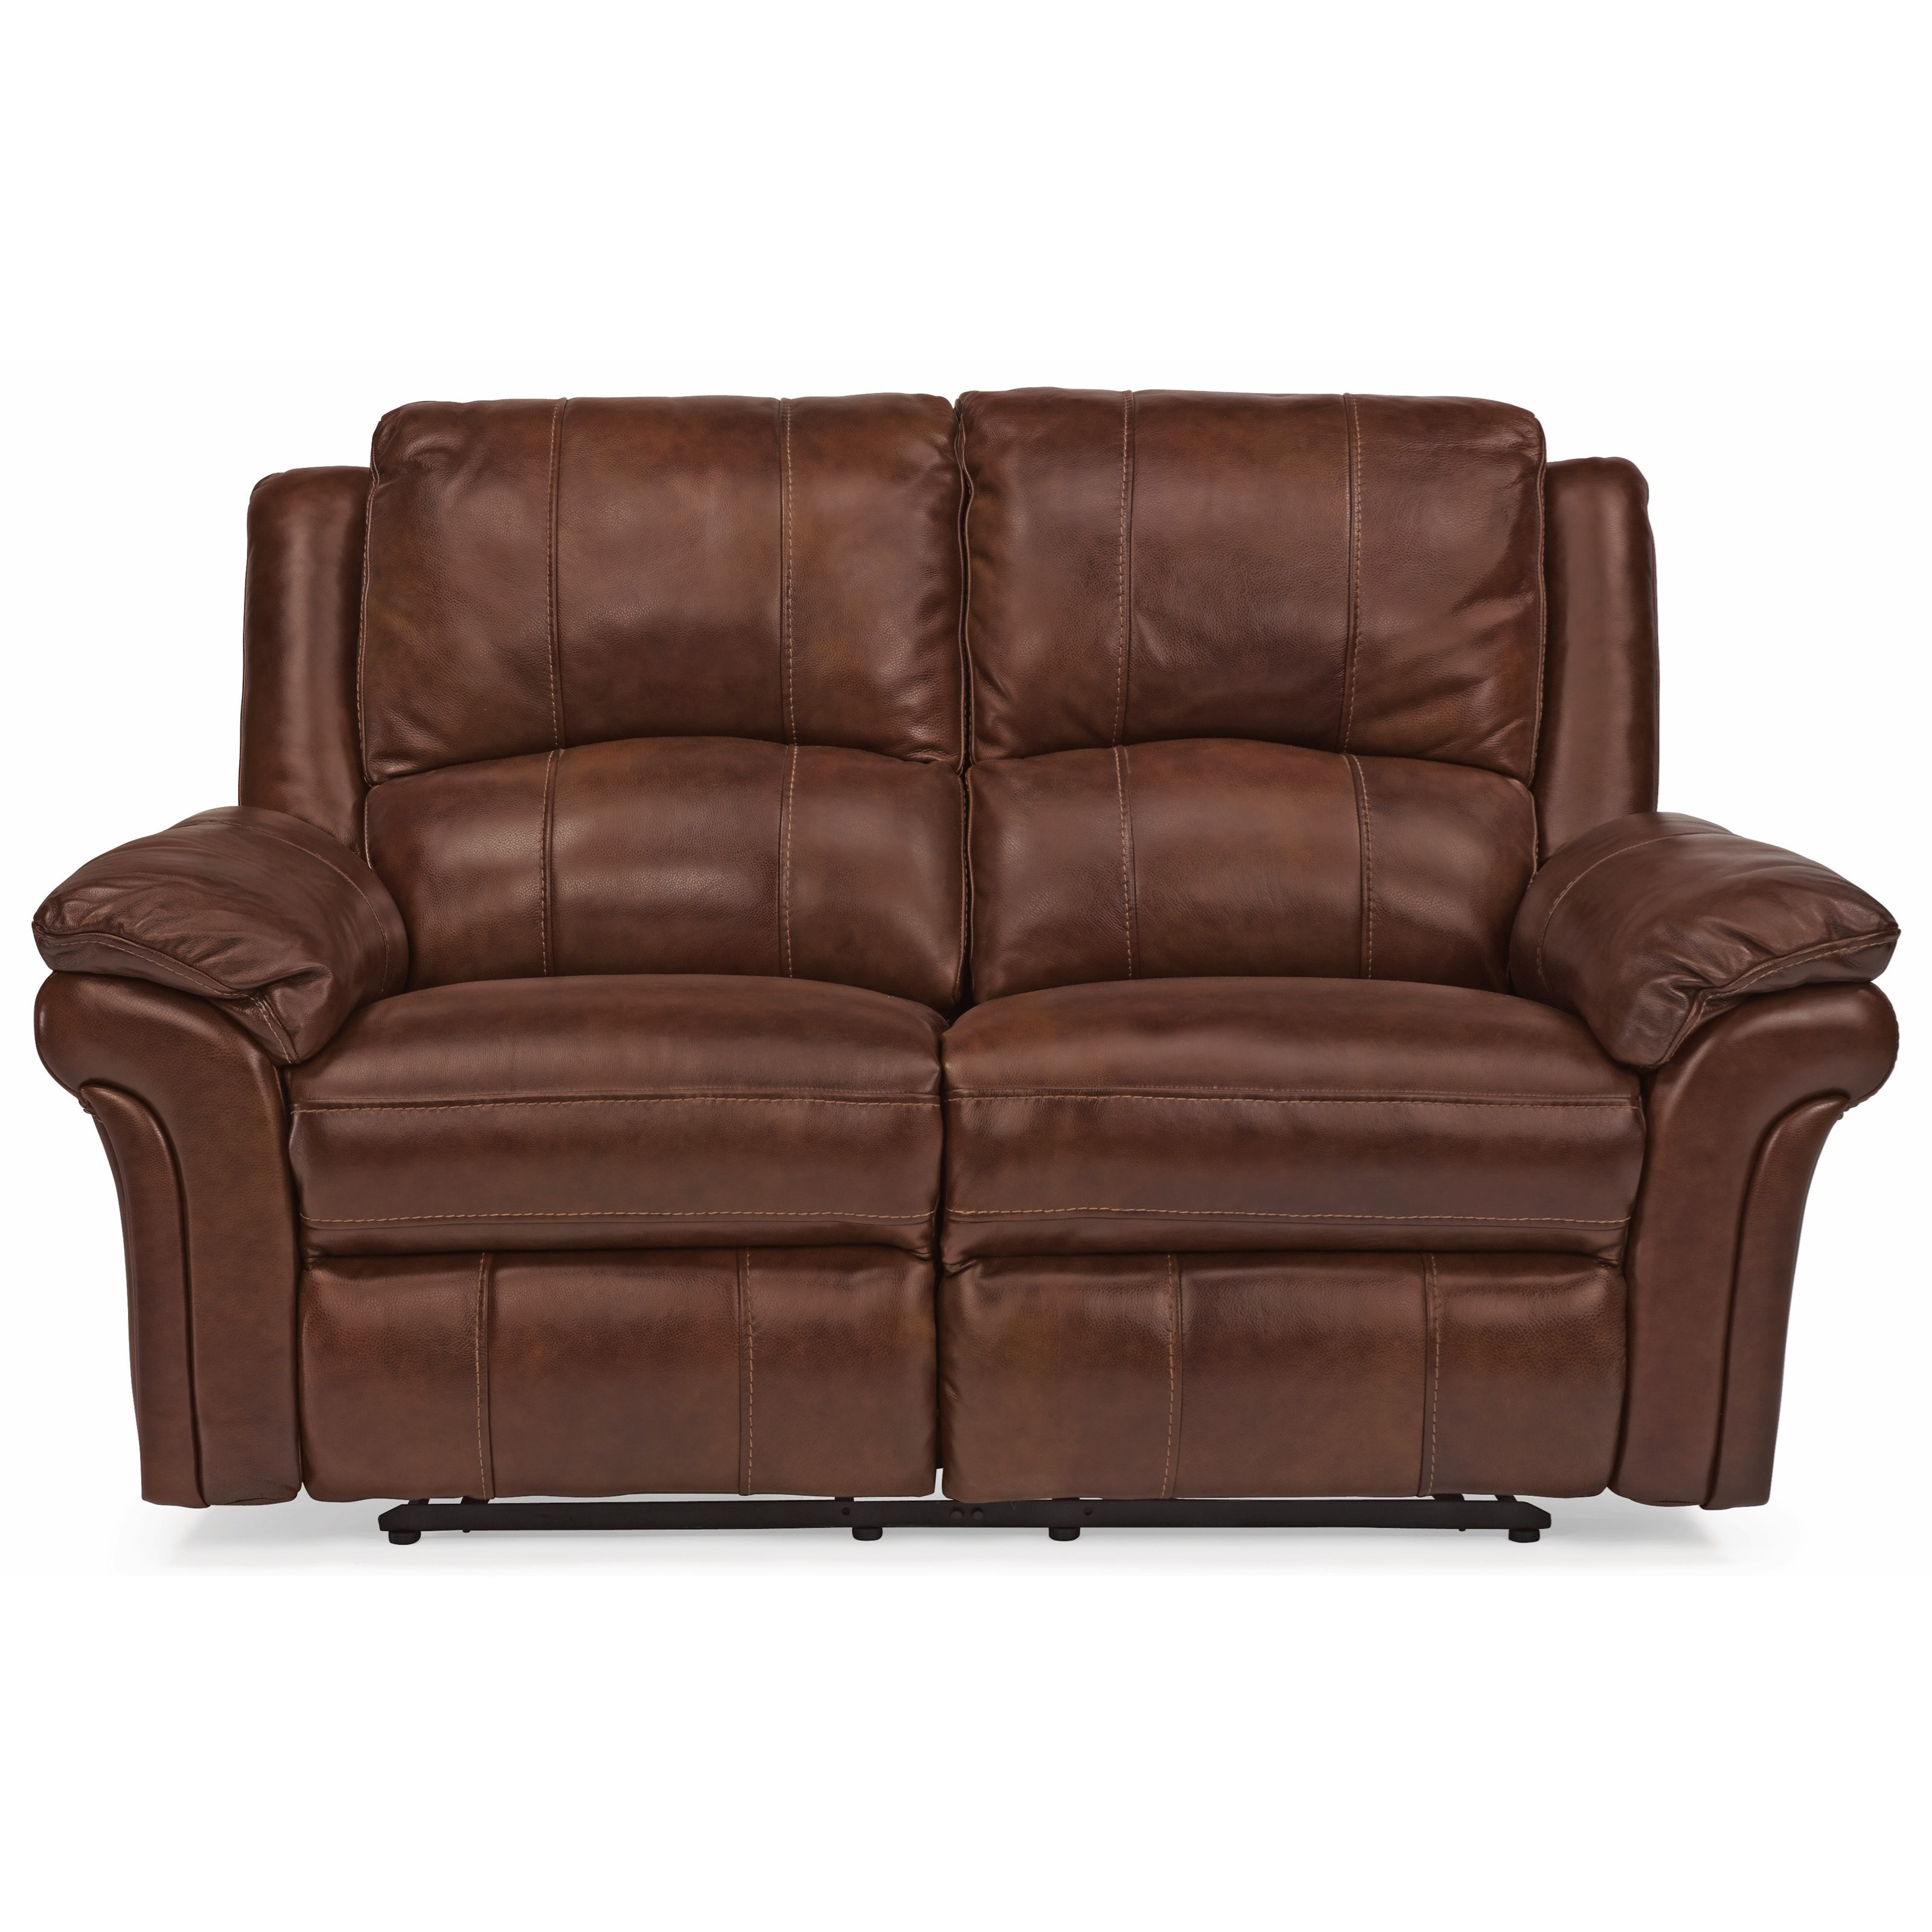 Flexsteel latitudes dandridge casual power reclining loveseat boulevard home furnishings Power loveseat recliner